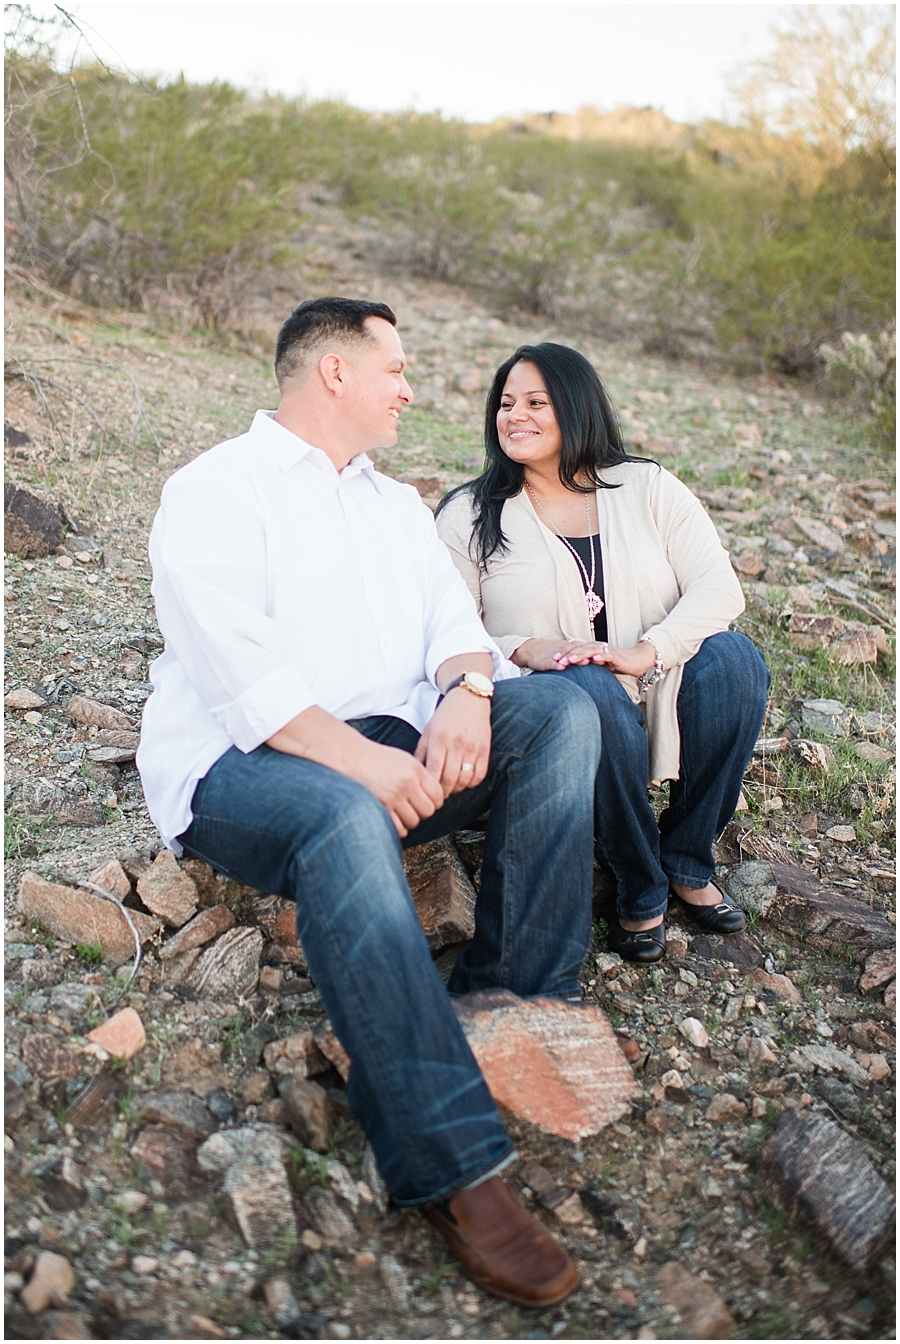 Vale family photo session at Desert Foothills Trailhead in Ahwatukee, Arizona.